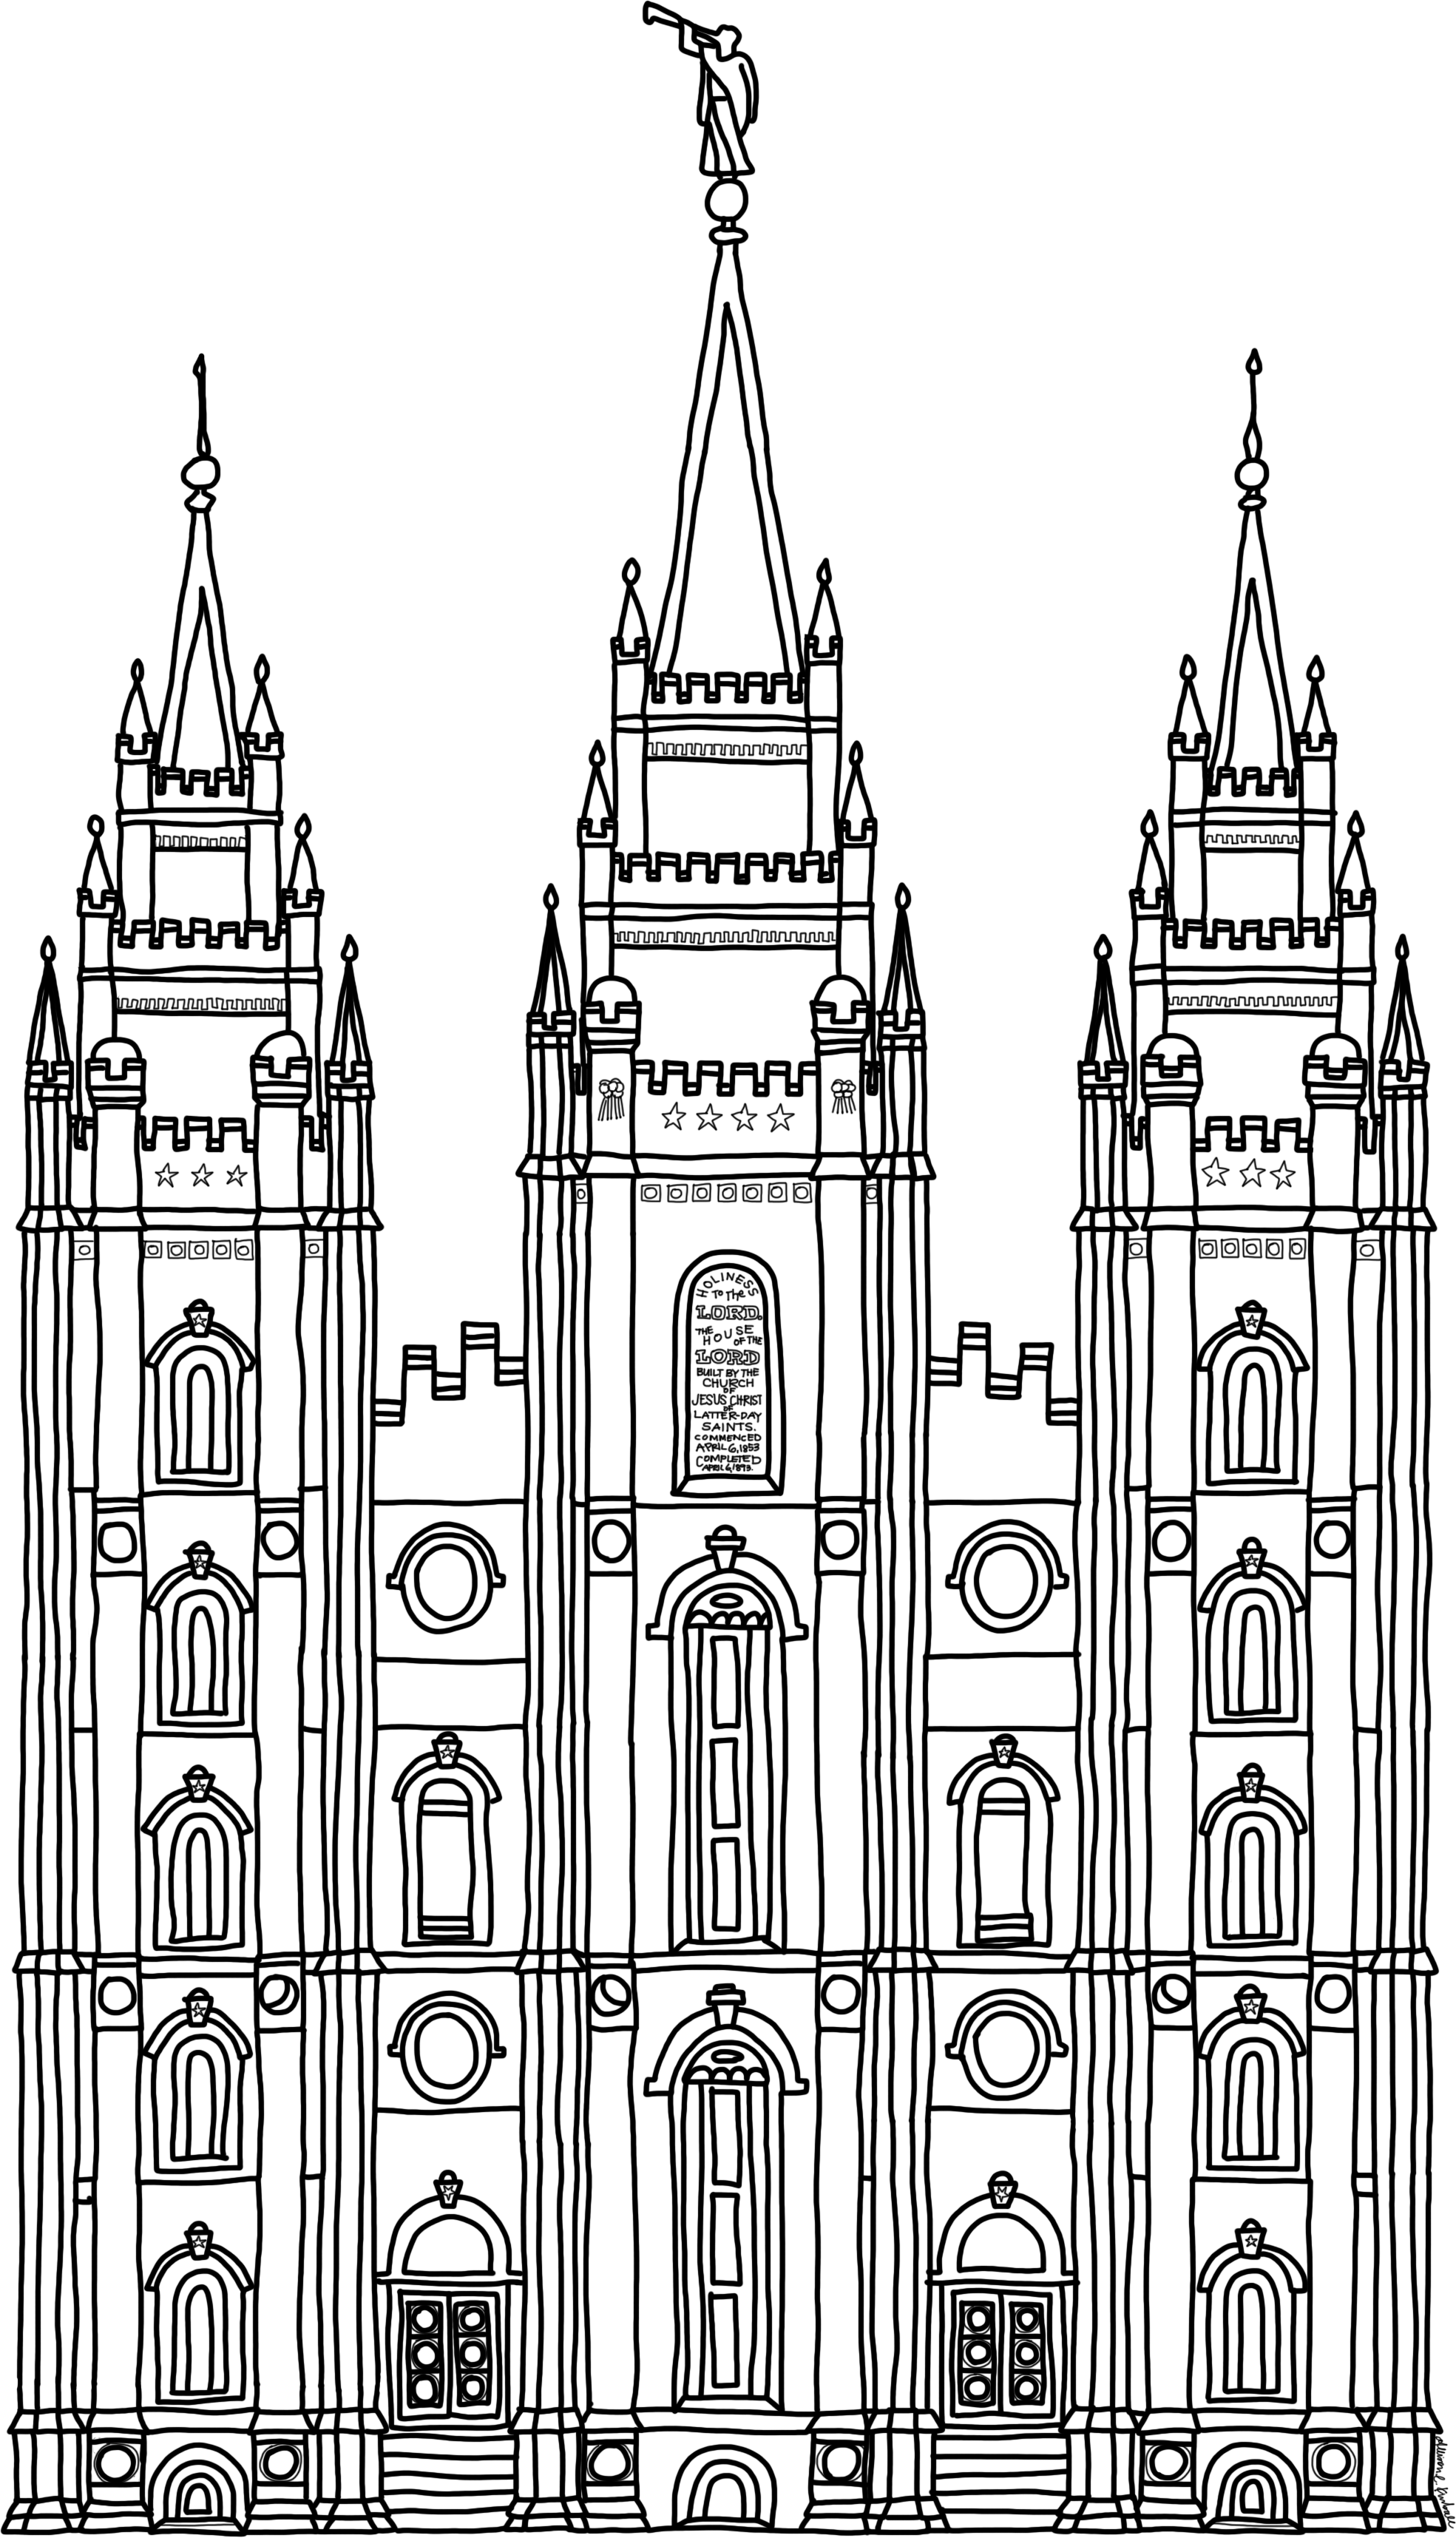 ... Salt Lake Temple U0026middot; Downlo-... Salt Lake Temple u0026middot; Download Akimball Saltlaketemple Png This Is Approximately 6 5 X 11-13